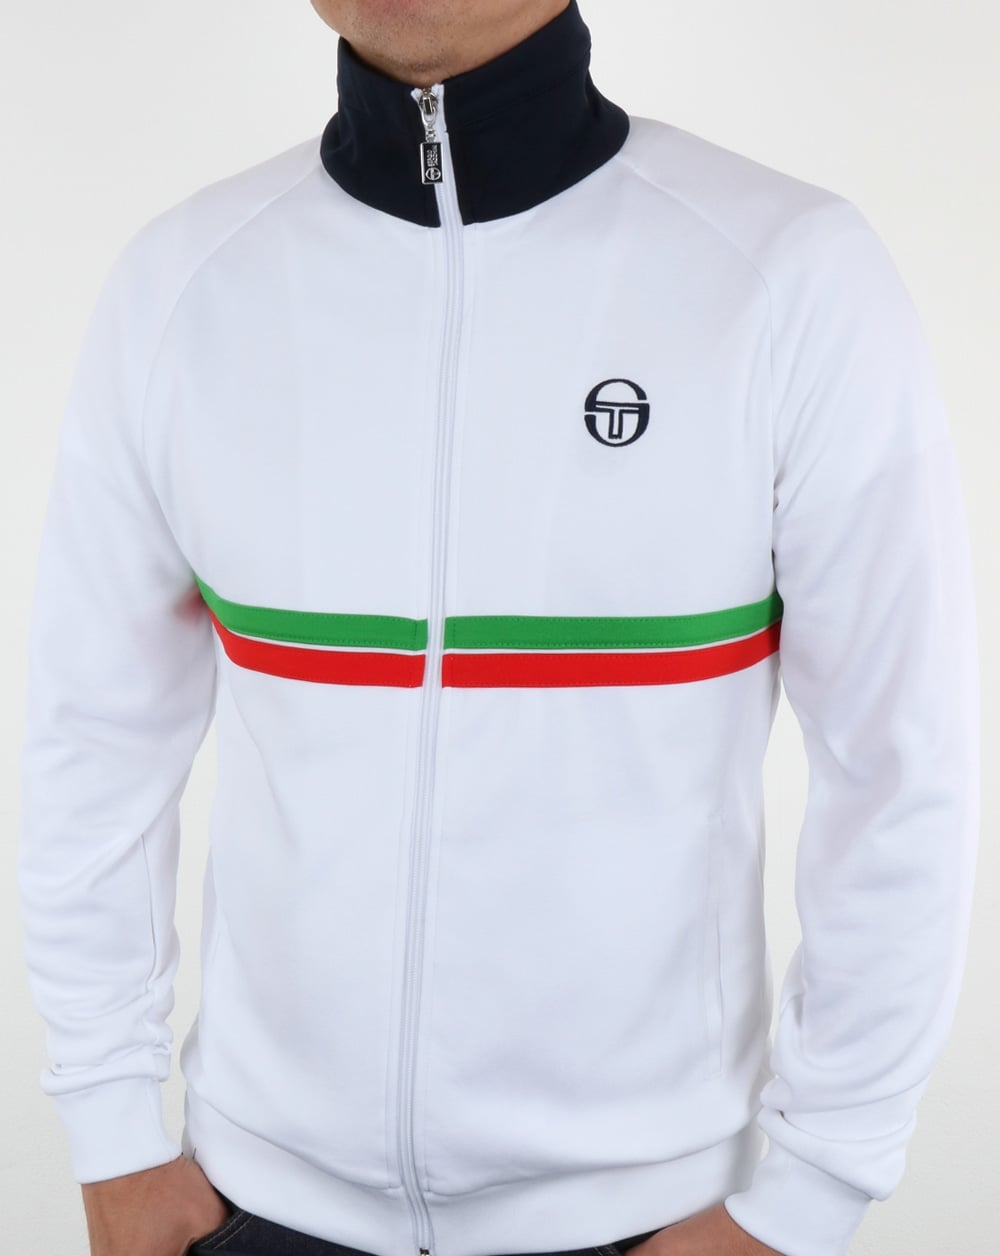 05fdd354eab3 Sergio Tacchini Dallas Track Top White/Green/Red,tracksuit,jacket,mens